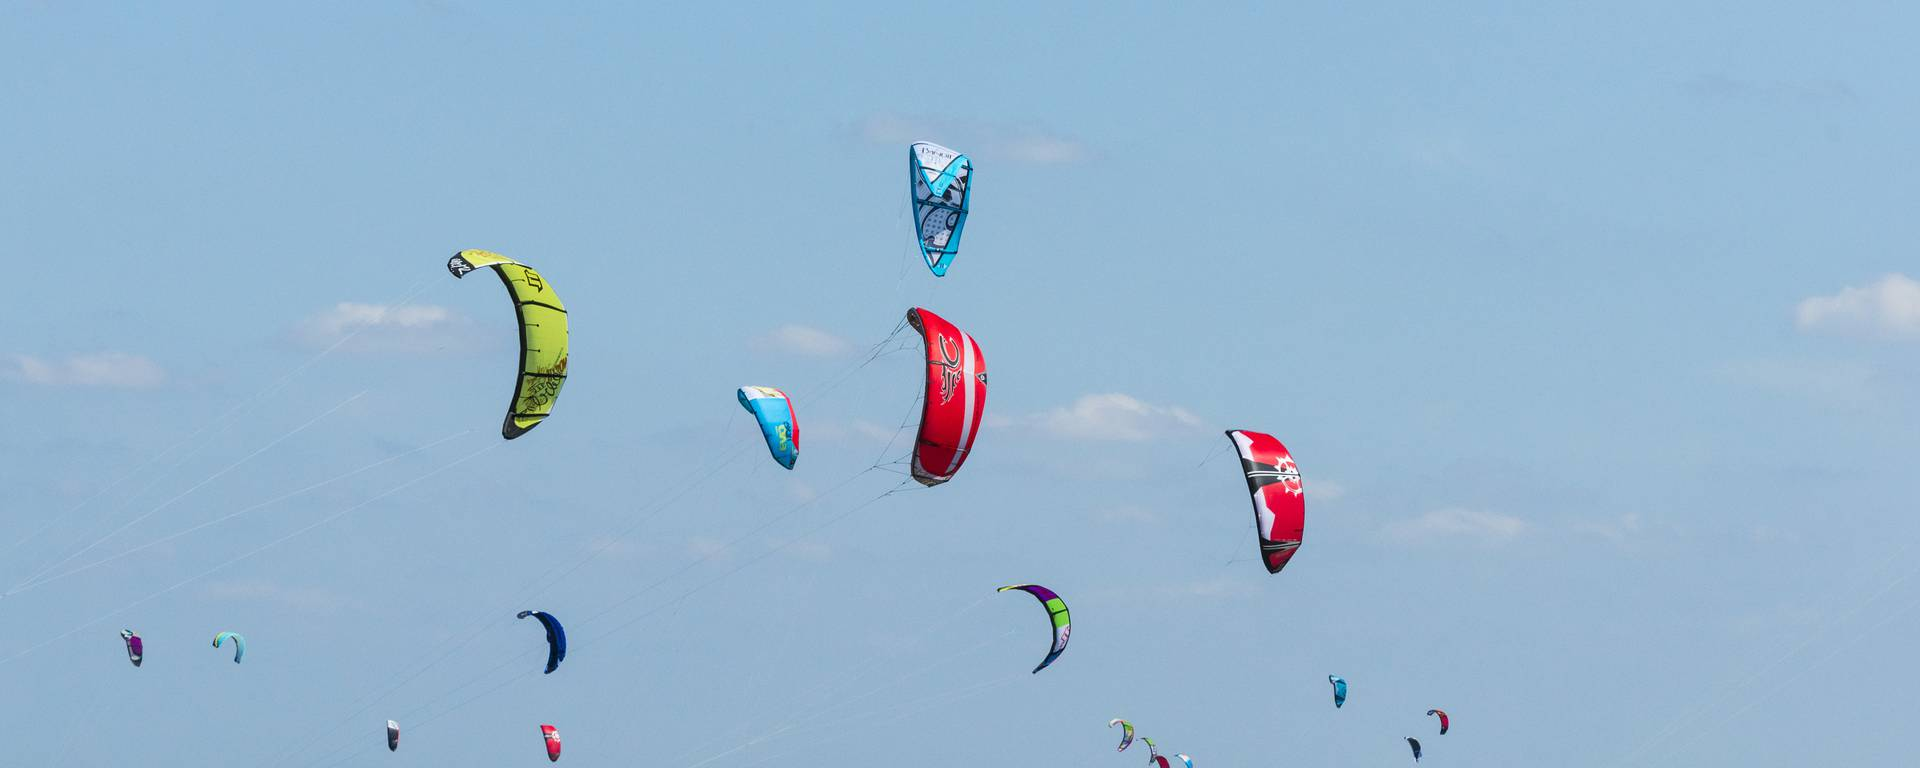 kite-surf by Yann Werdefroy